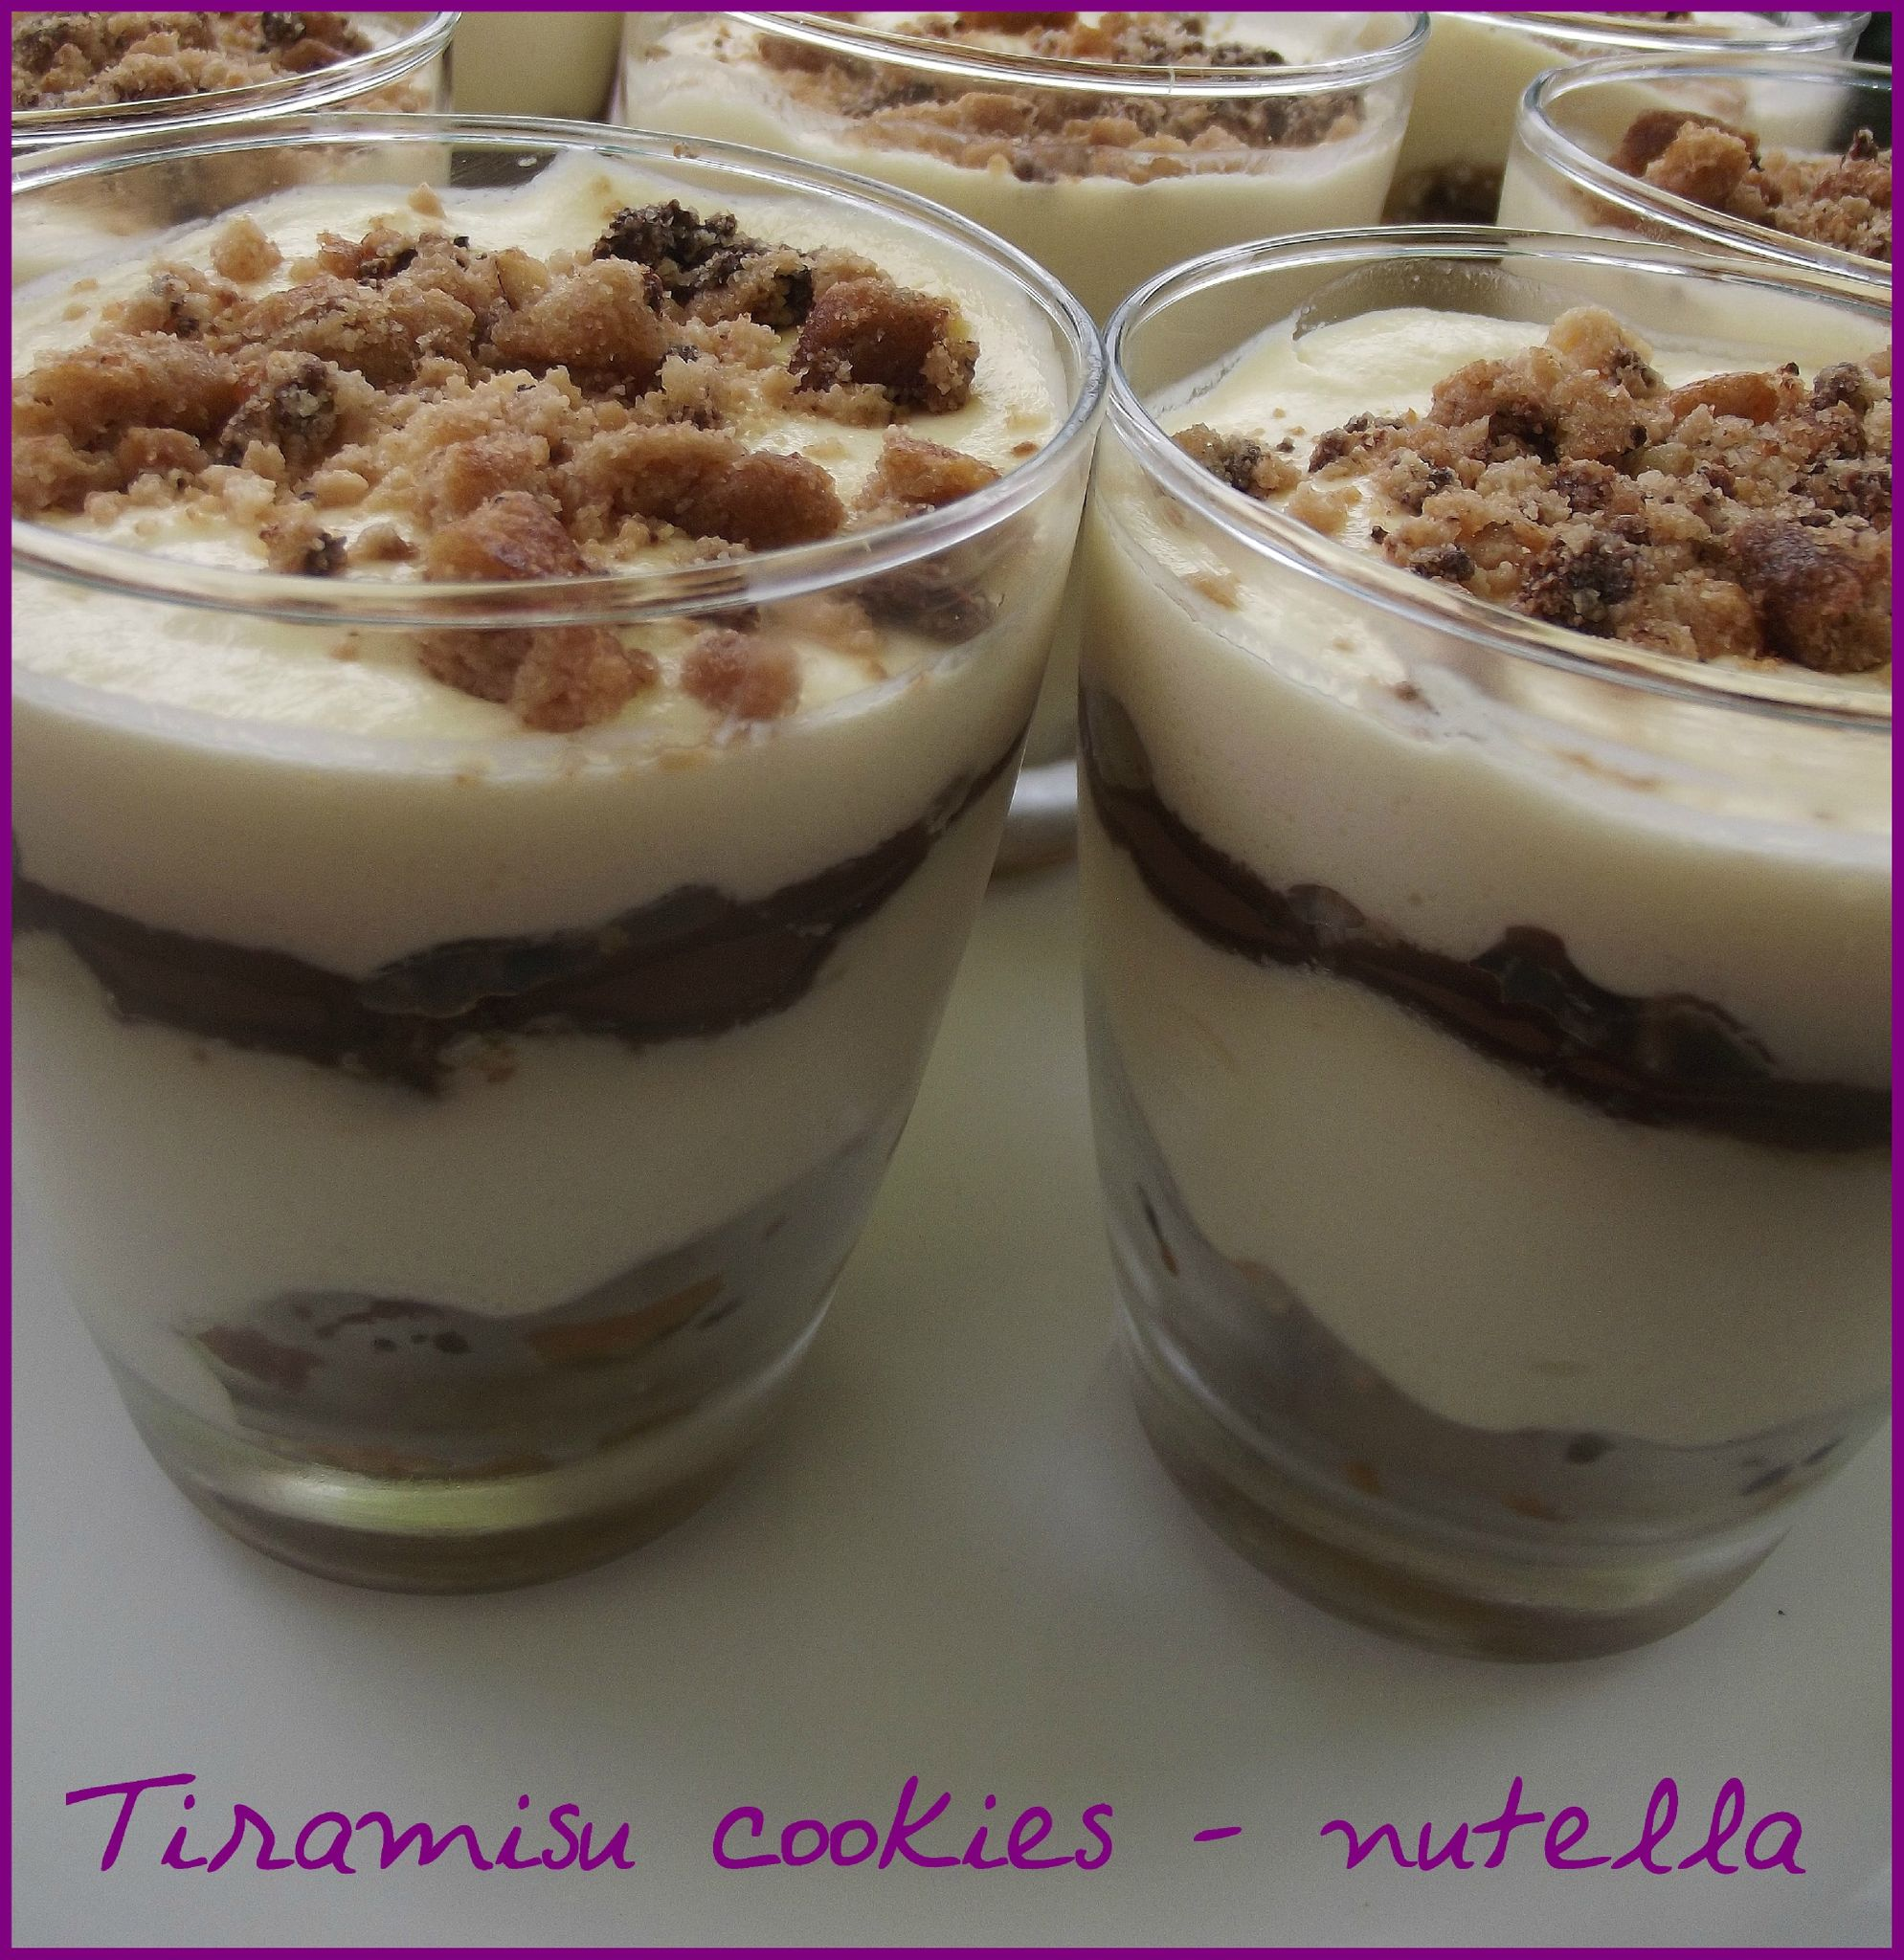 recette tiramisu nutella cookies recettes de tiramisu. Black Bedroom Furniture Sets. Home Design Ideas